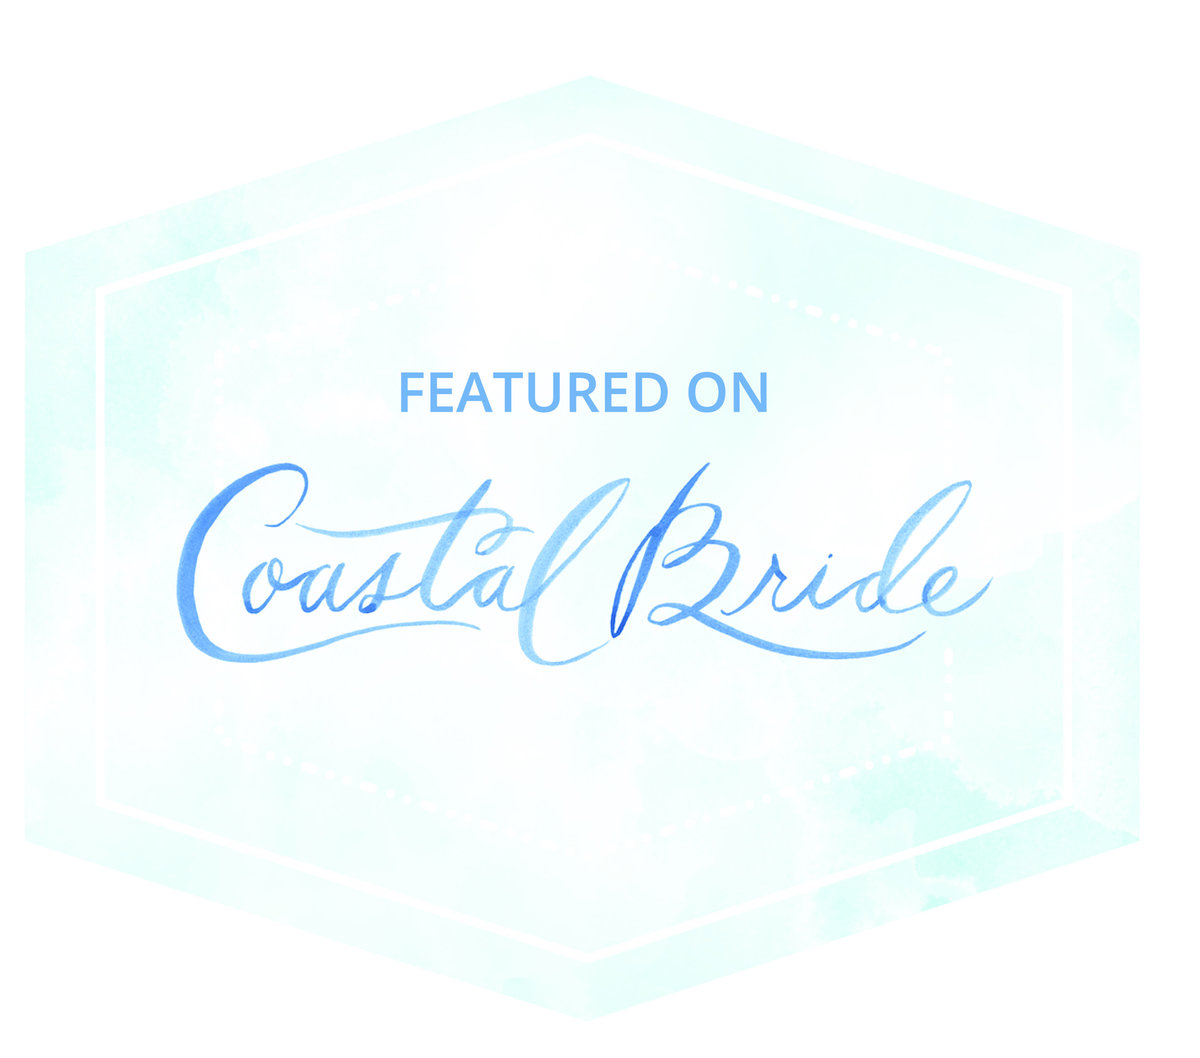 Coastal Bride Badge